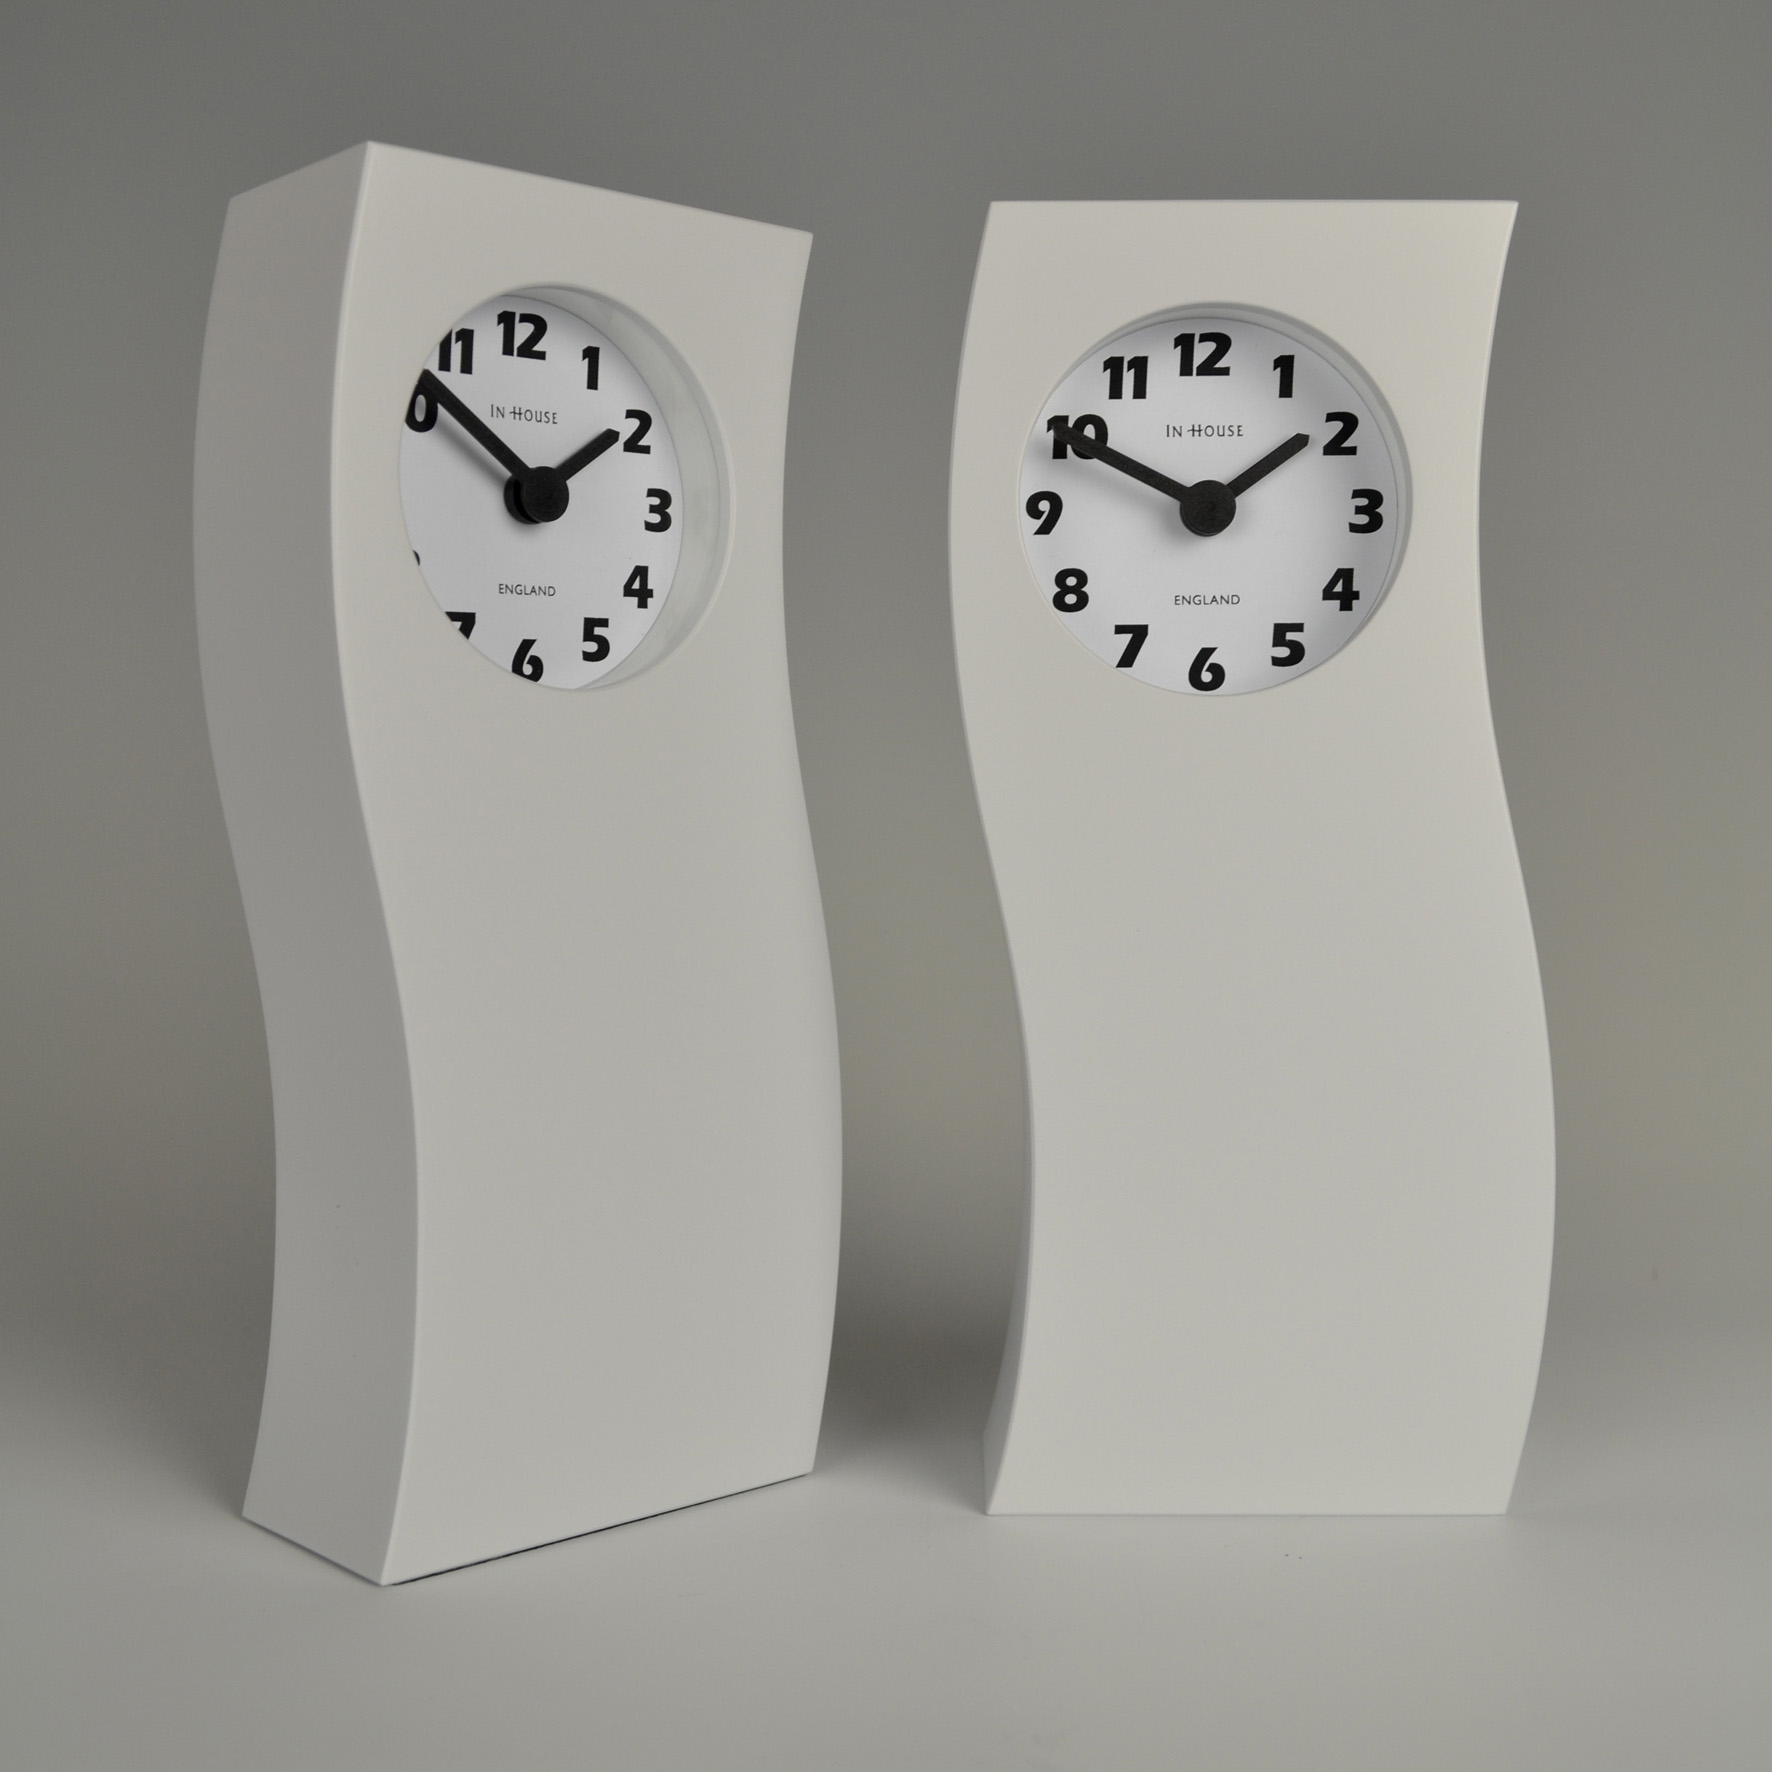 Inhouse clocks | handmade in England | tall white mantel clock